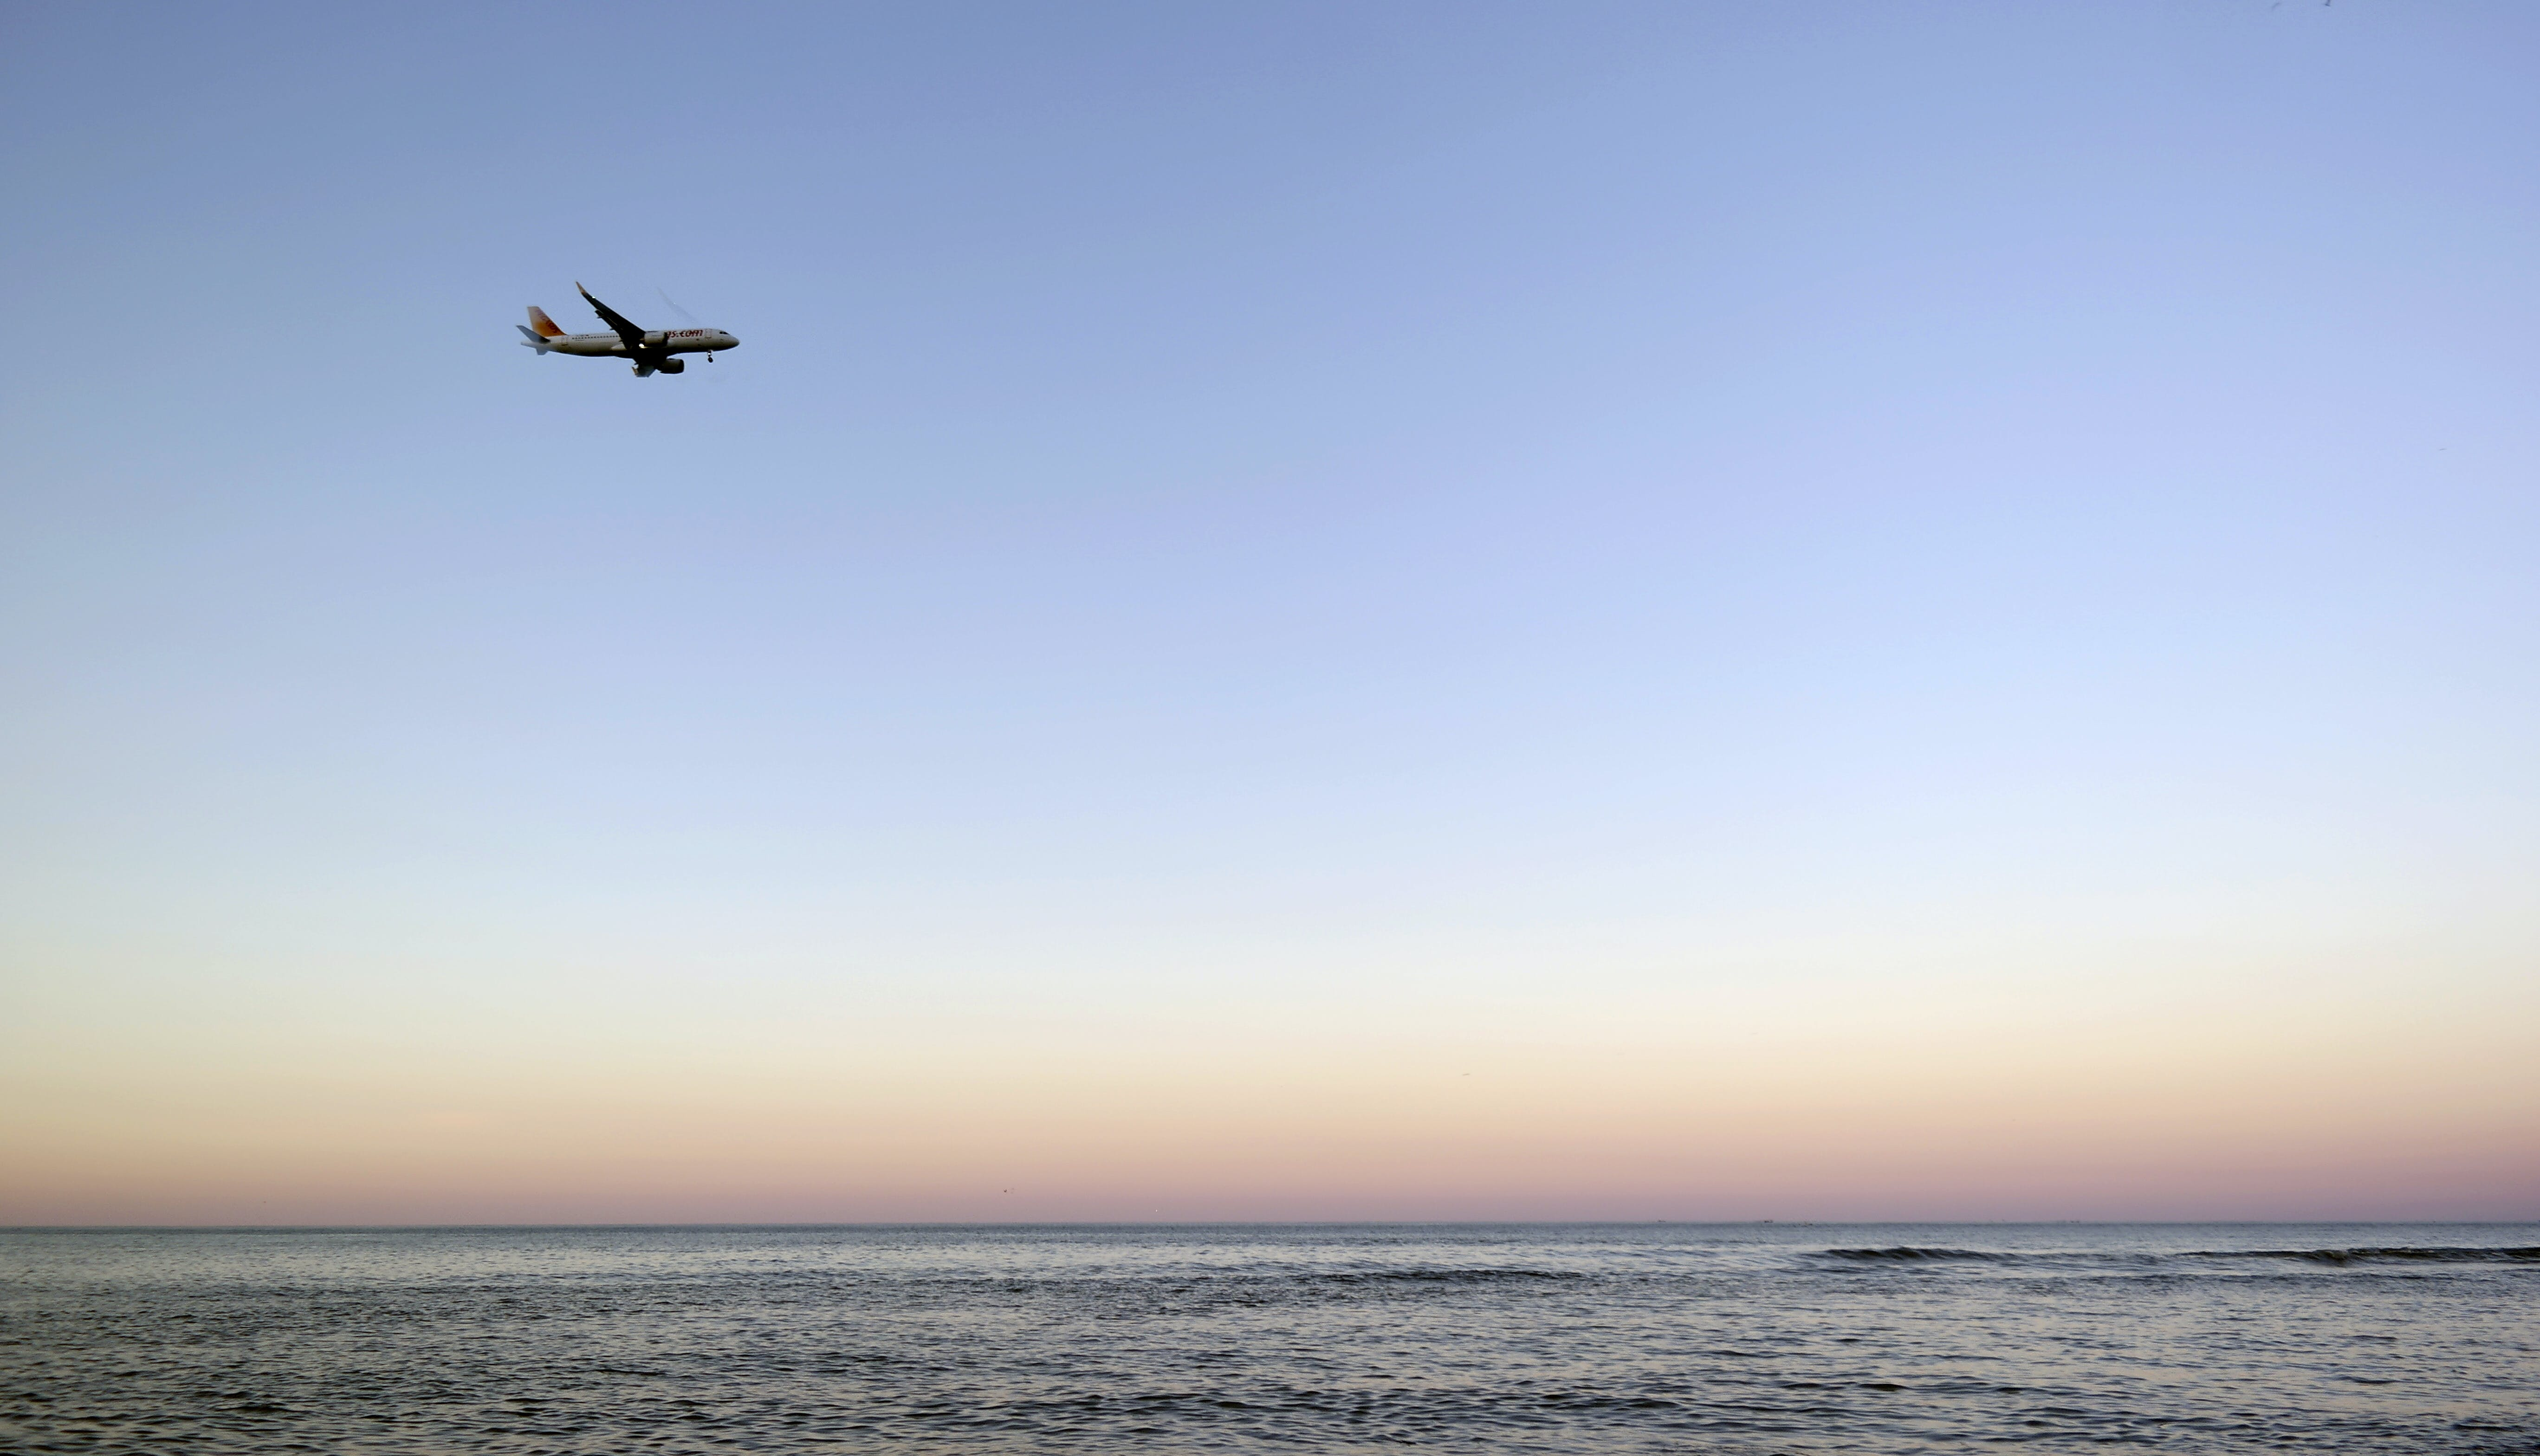 Body of Water and Airliner